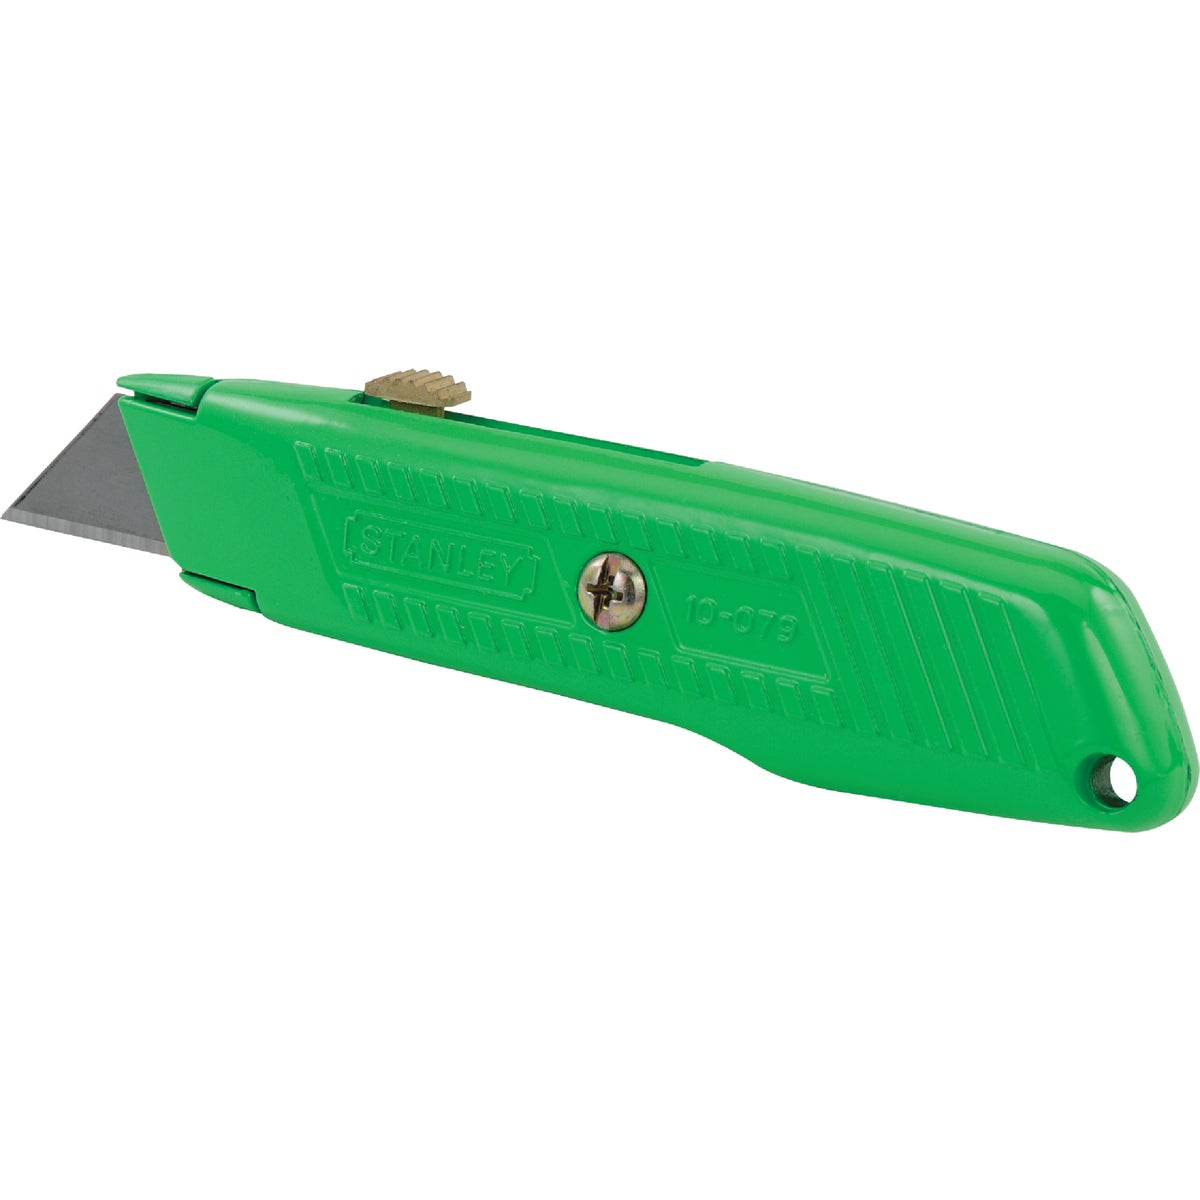 UTILITY KNIFE - 10-179 by Stanley Tools